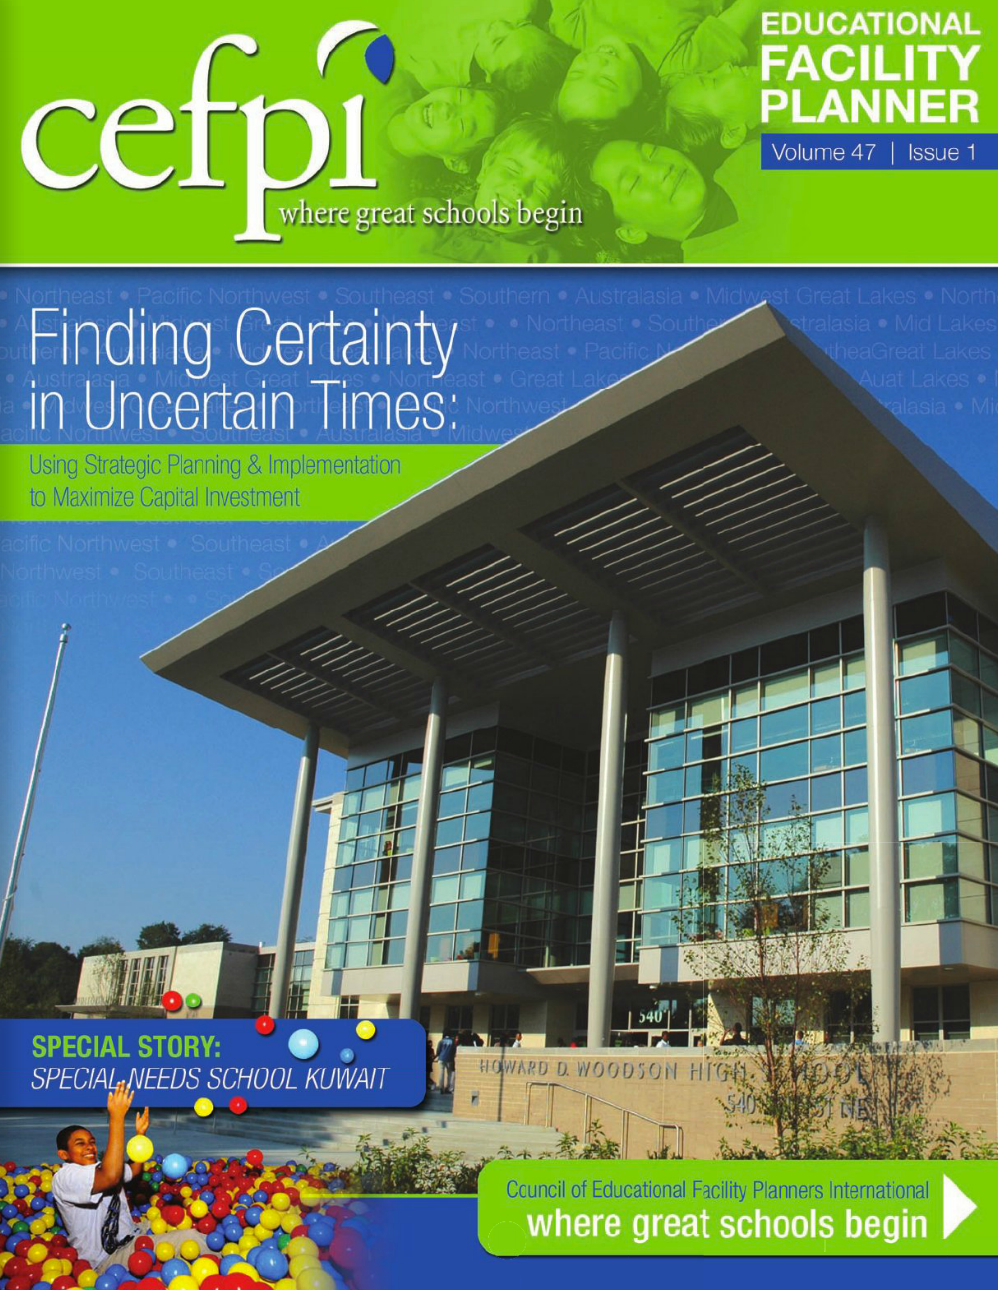 Education Facility Planner Magazine